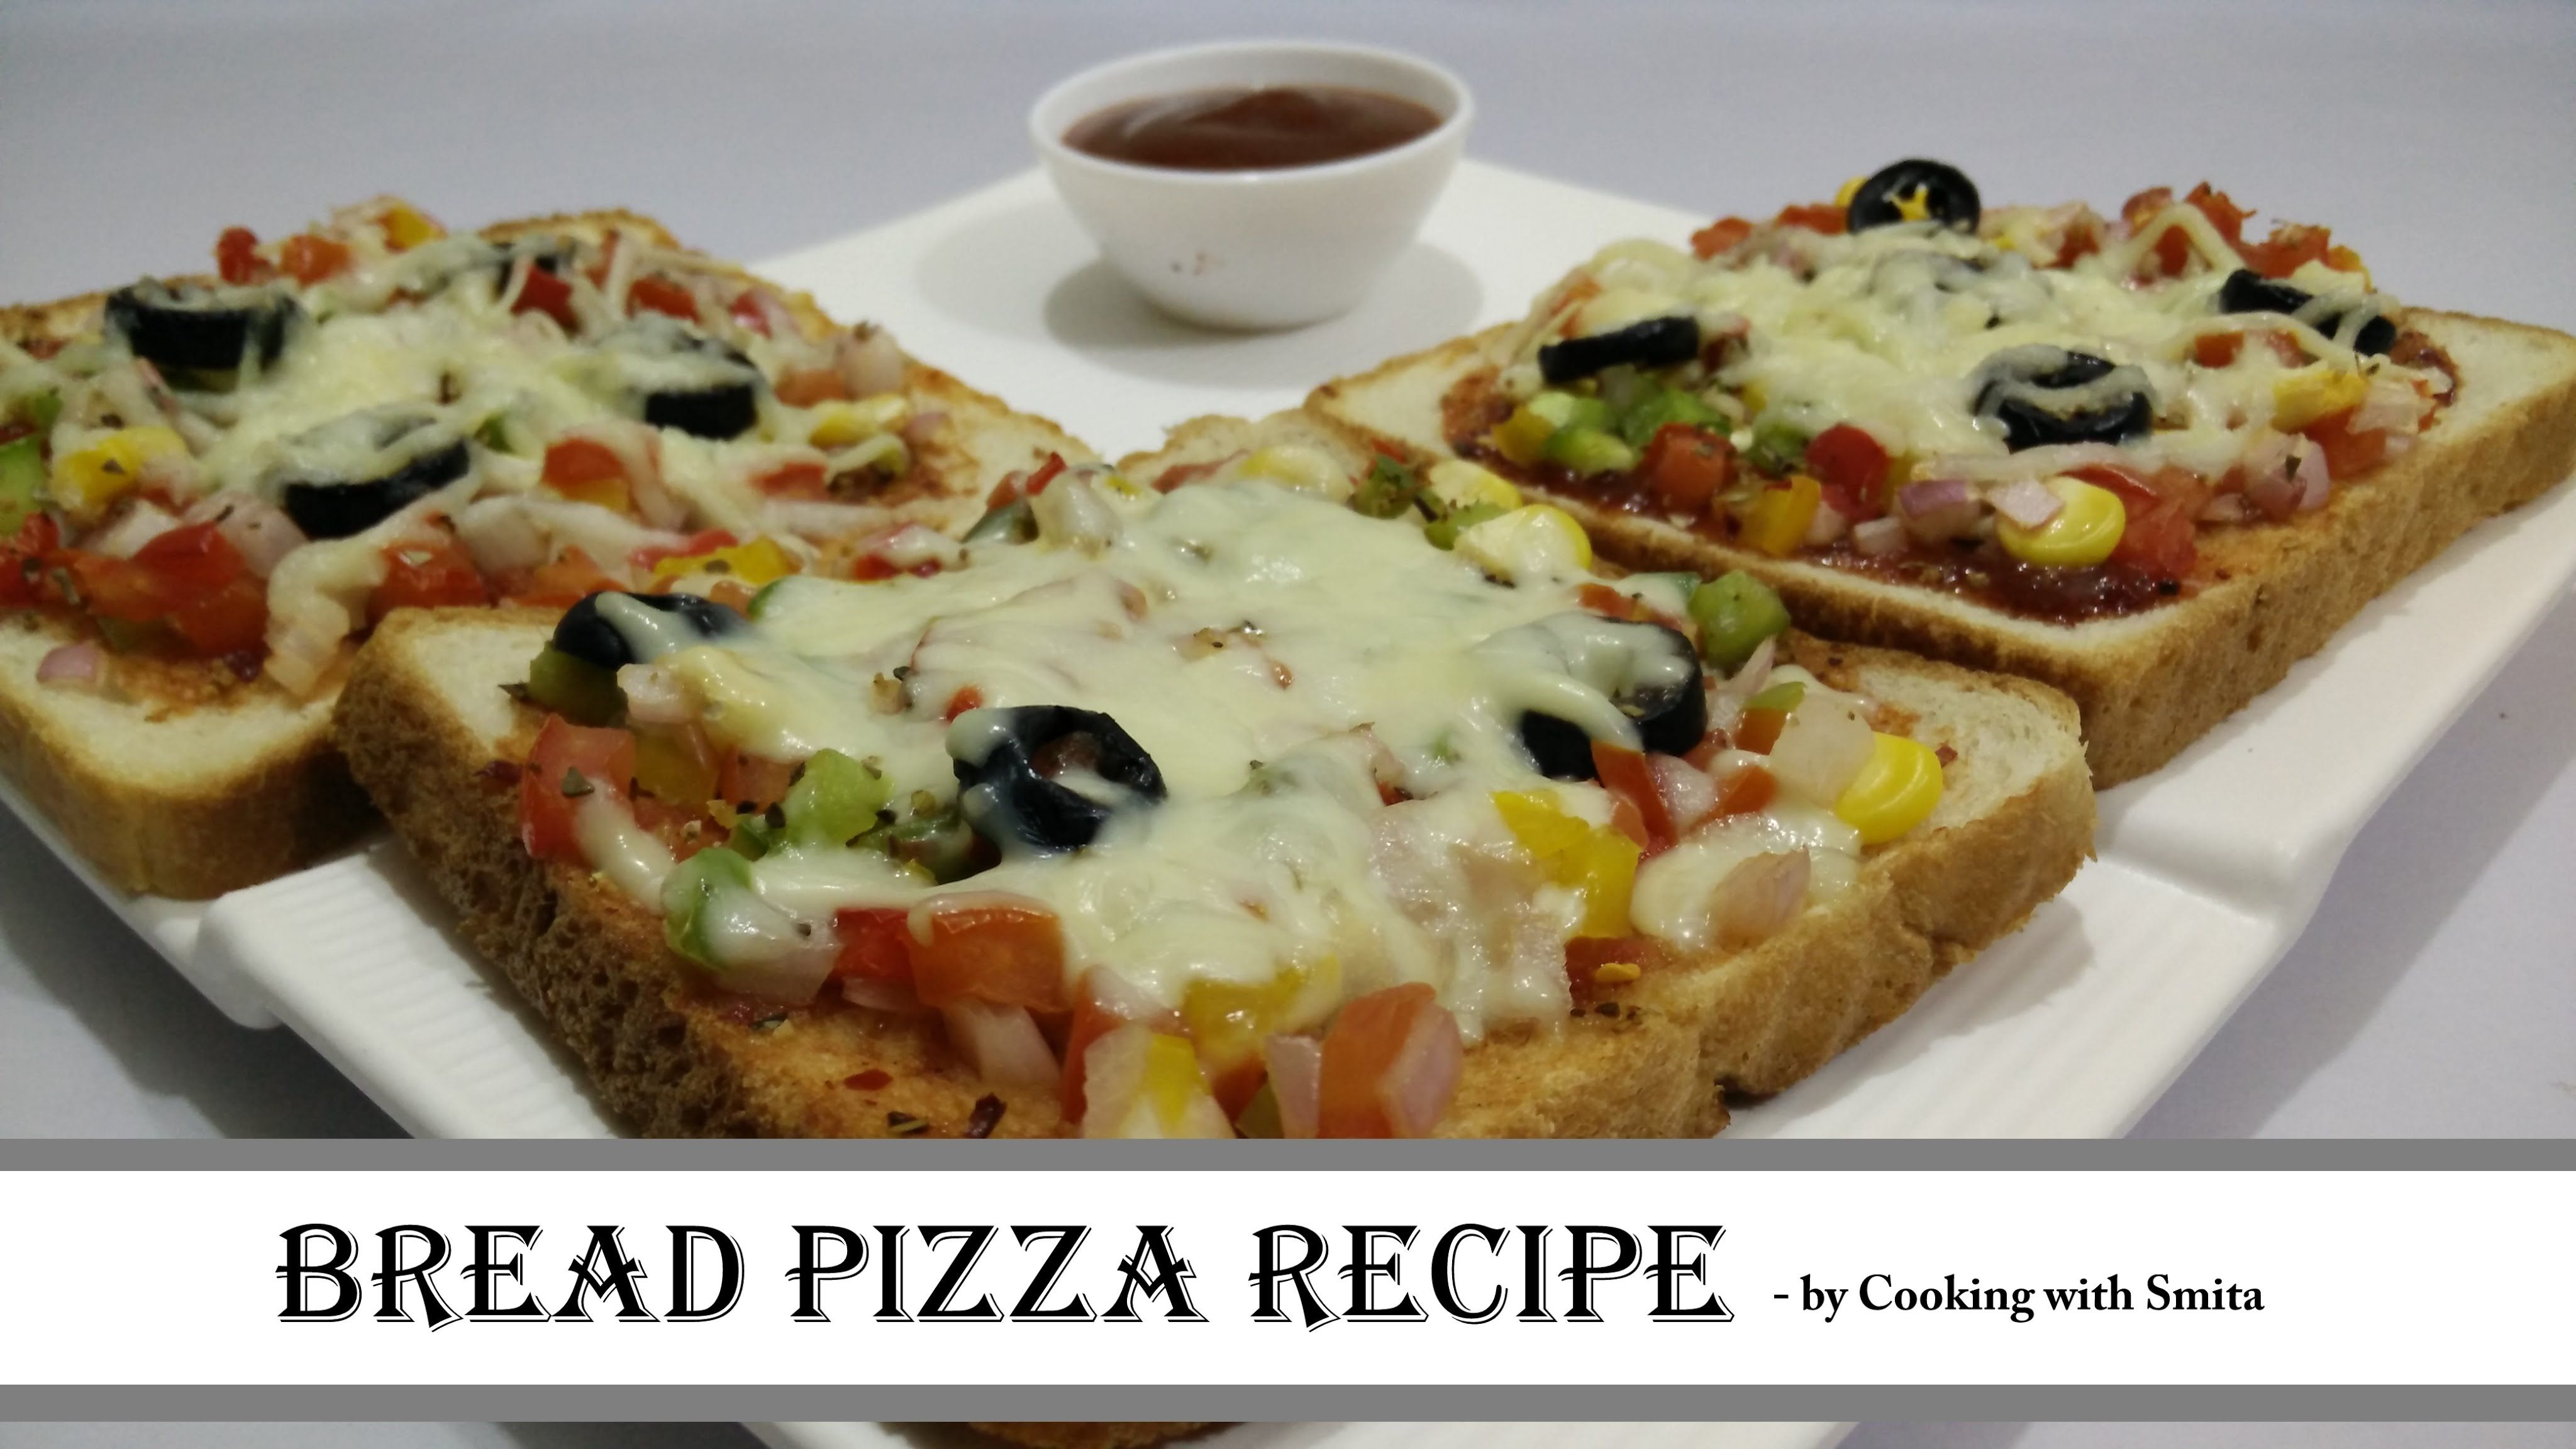 Bread pizza recipe by cooking with smita how to make bread pizza bread pizza recipe by cooking with smita how to make bread pizza on tawa bread forumfinder Choice Image